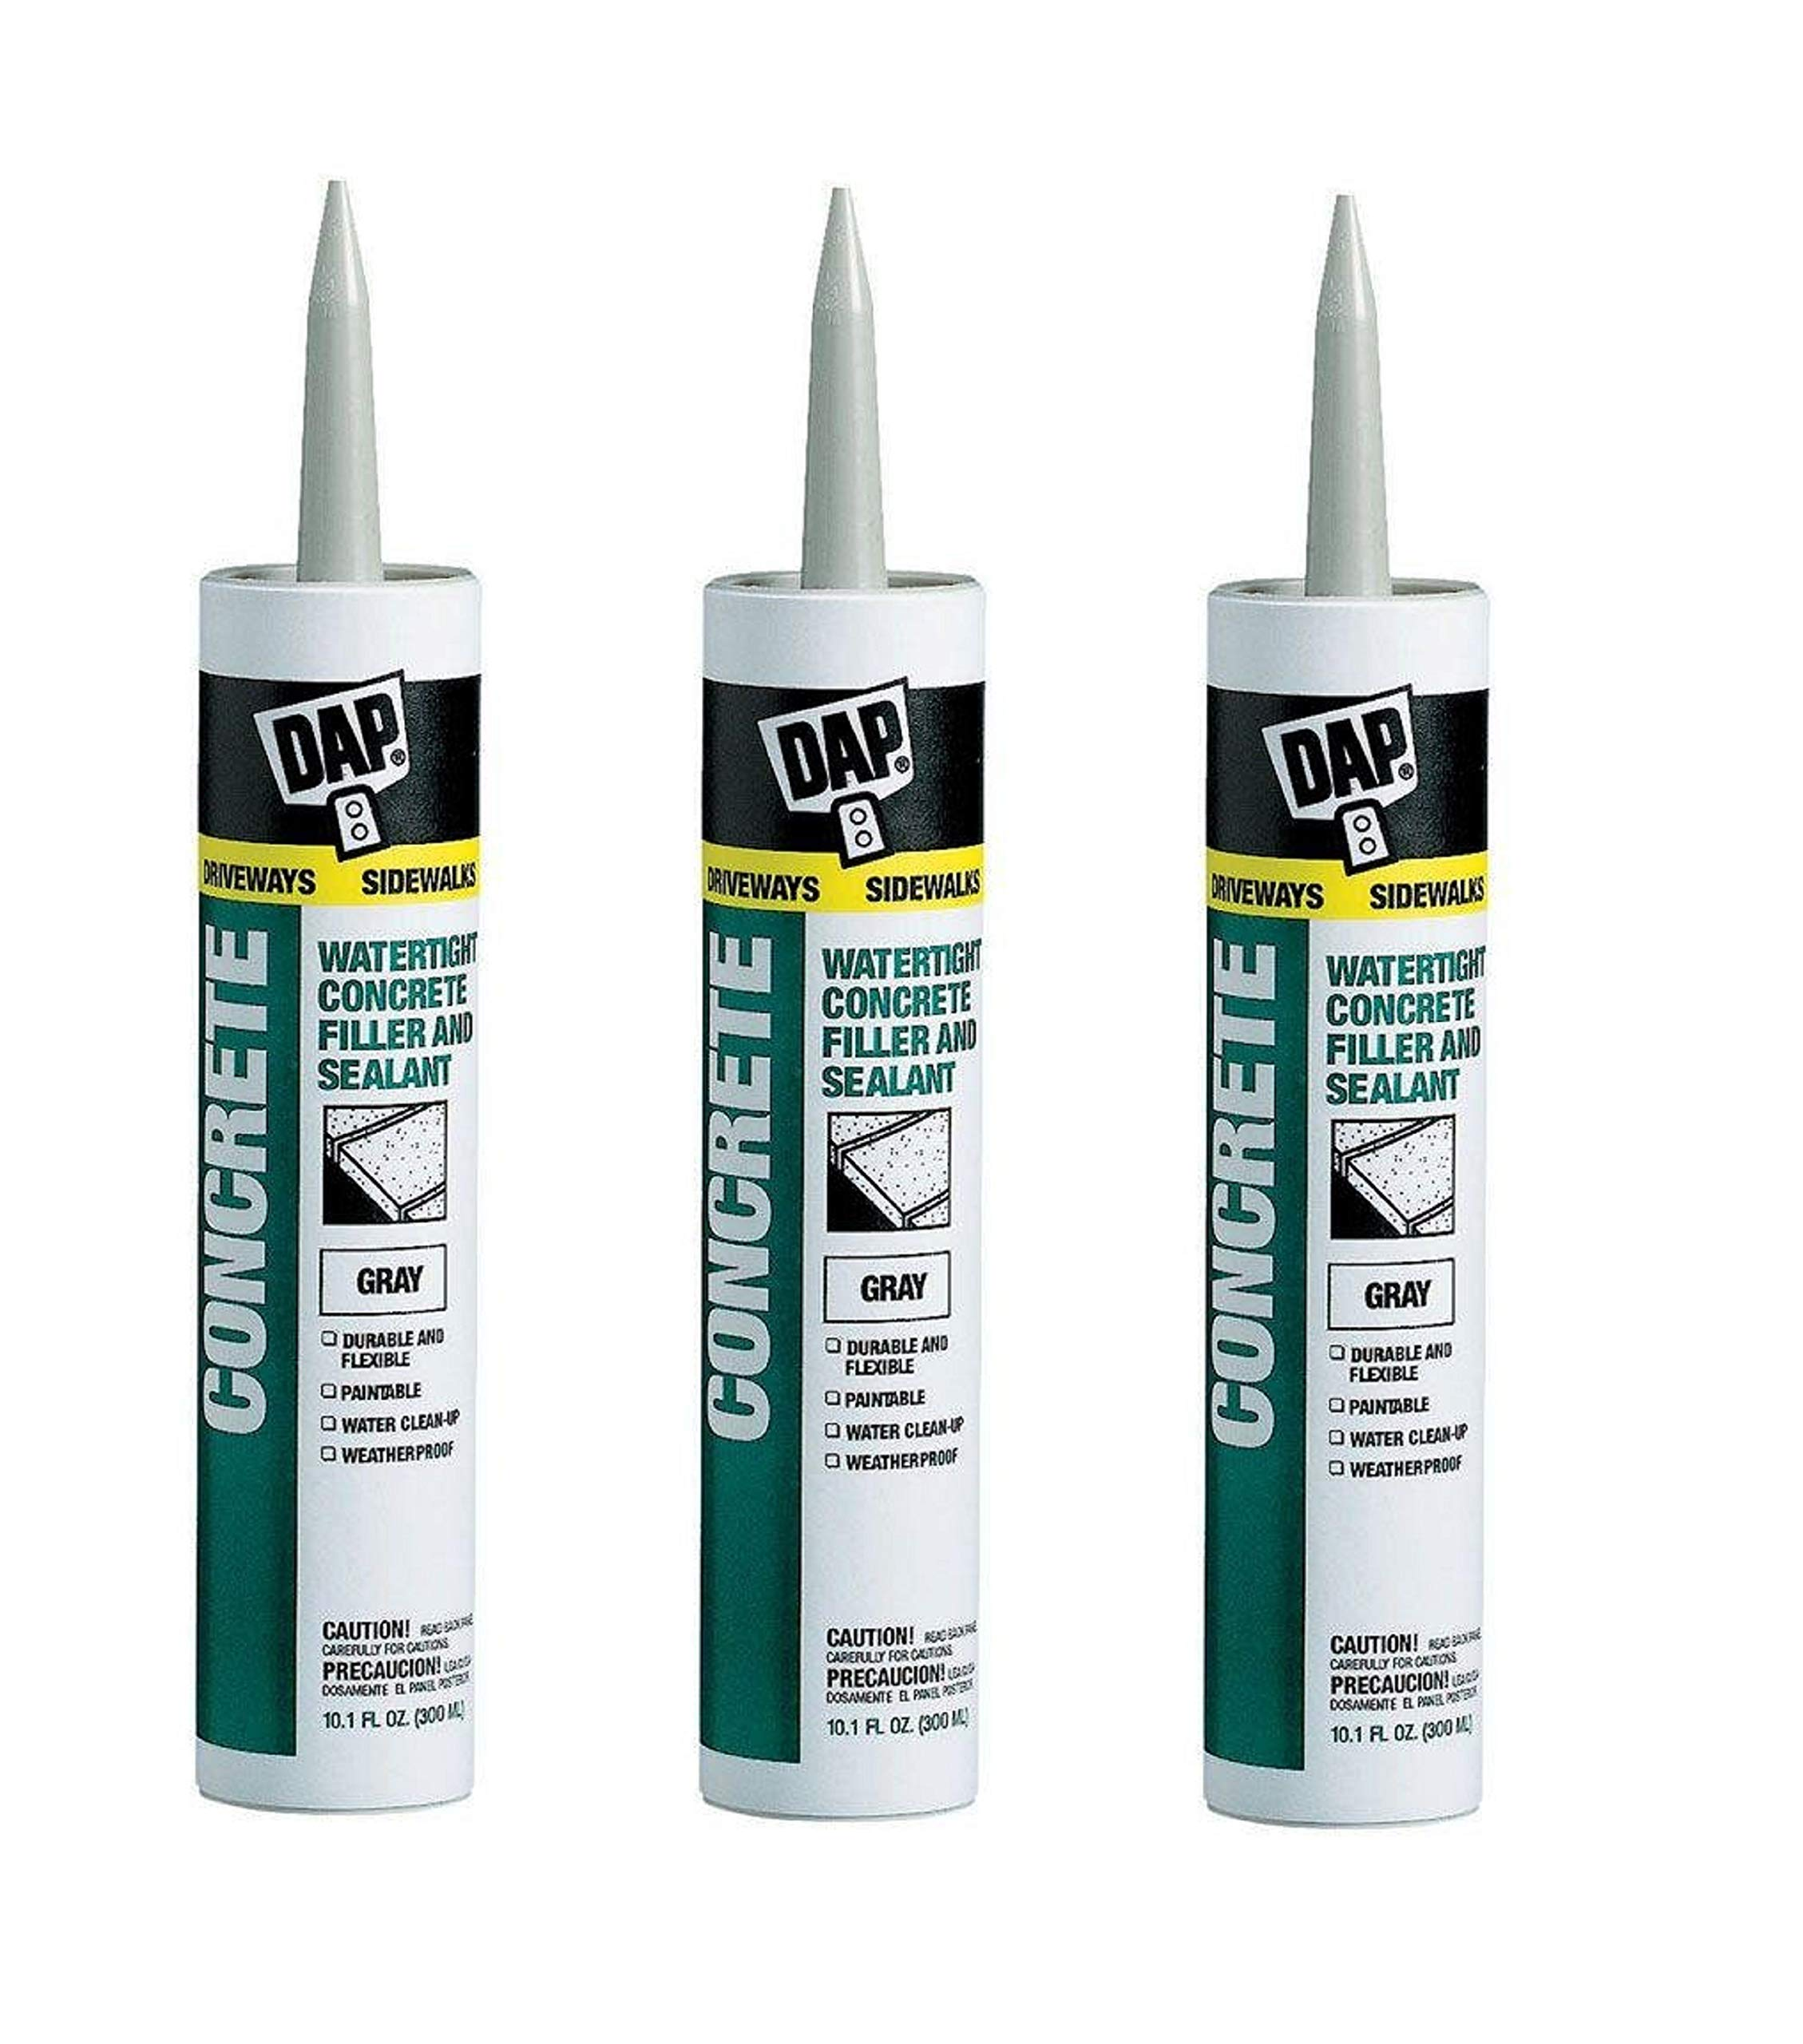 Dap 18021 Concrete and Mortar Watertight Filler and Sealant - Gray 10.1-oz Cartridge (18096). Sold as 3 Pack by DAP